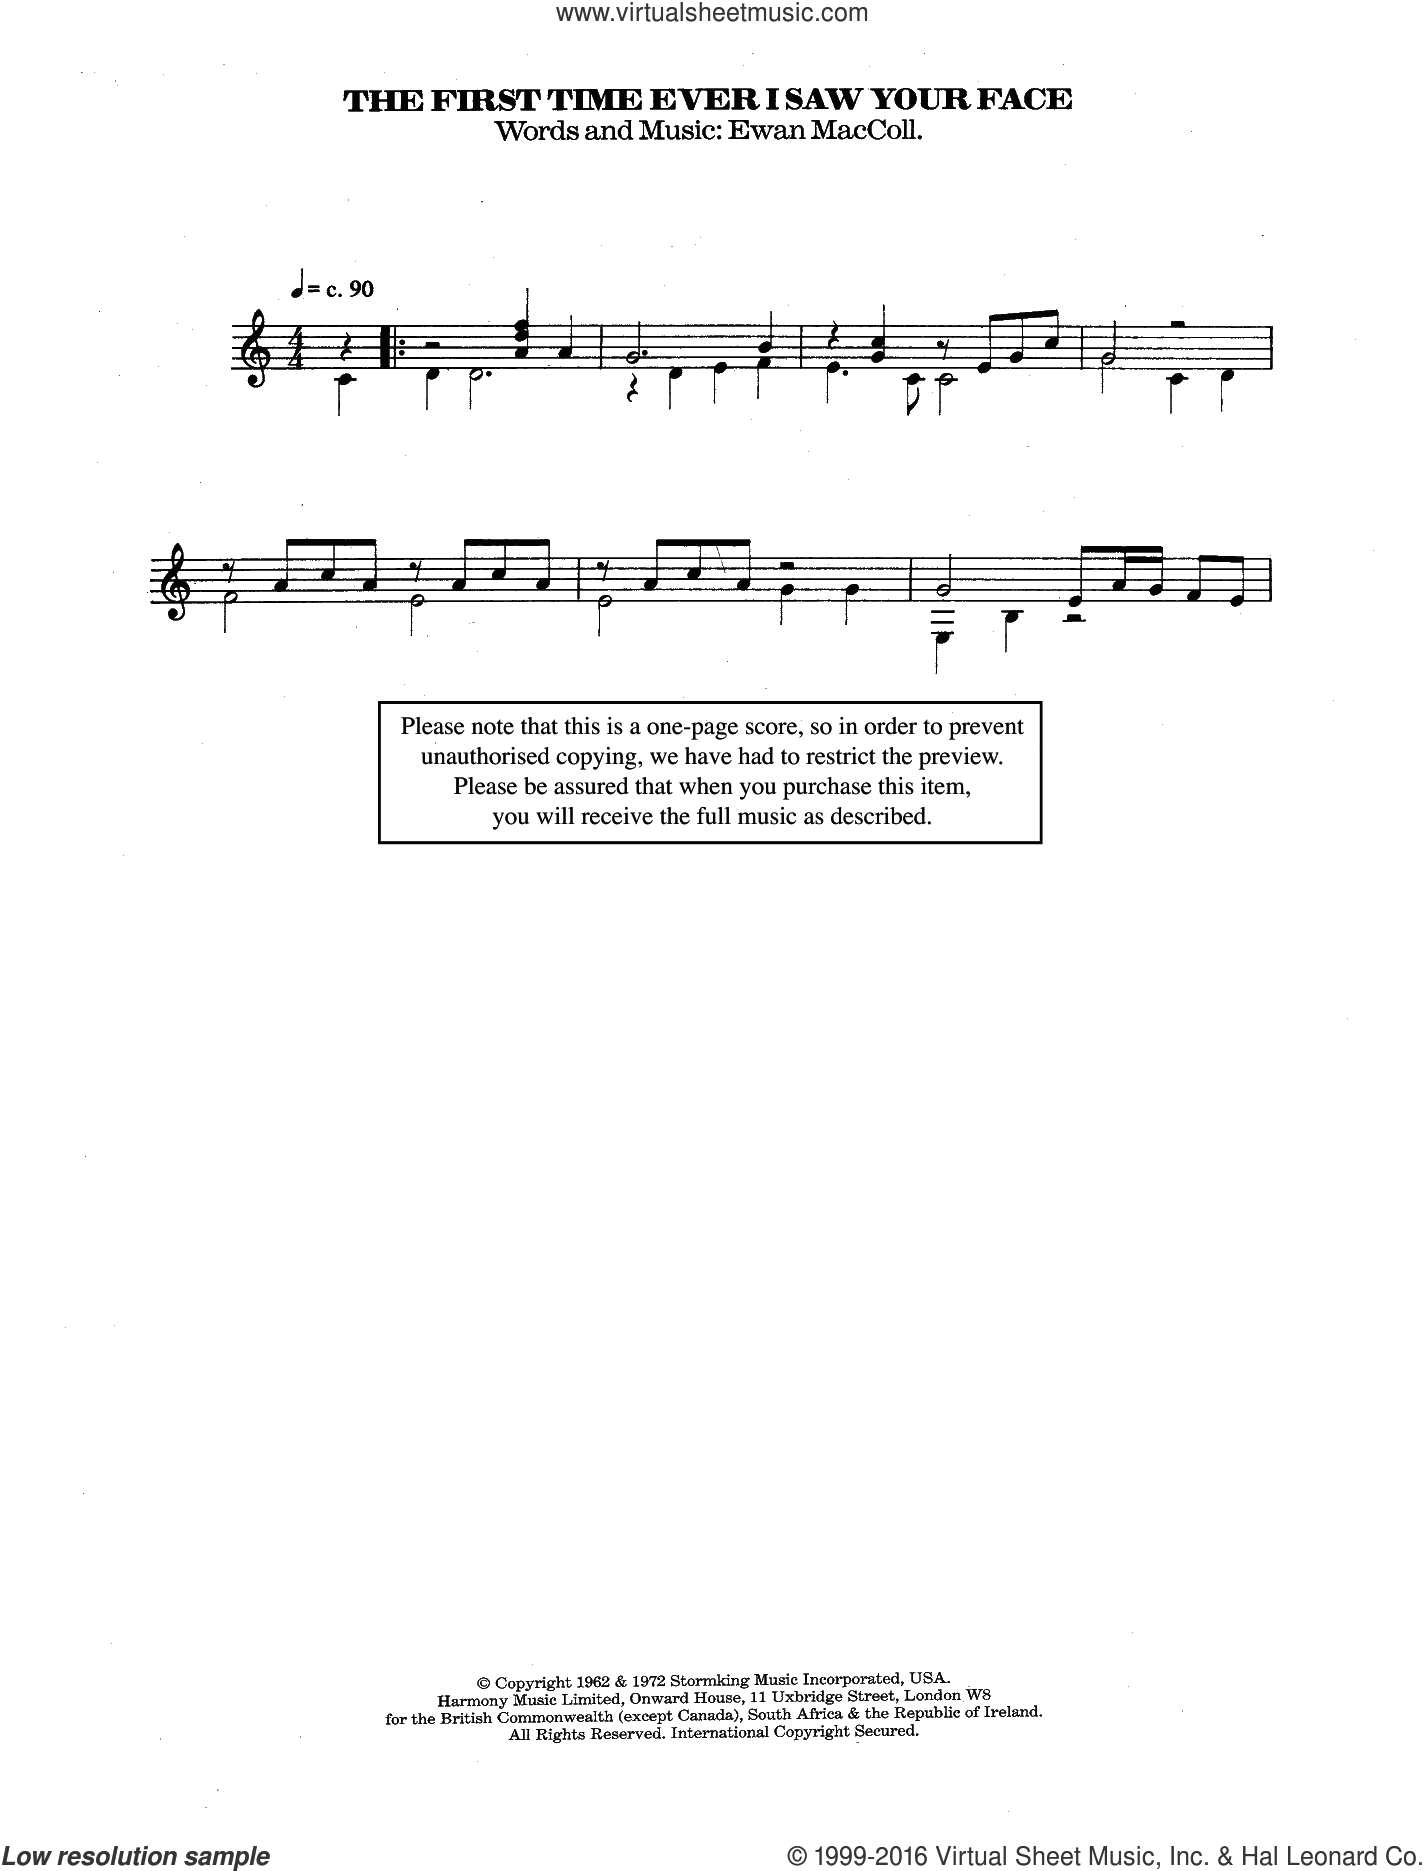 The First Time Ever I Saw Your Face sheet music for guitar solo (chords) by Ewan MacColl, Alison Moyet and Roberta Flack. Score Image Preview.